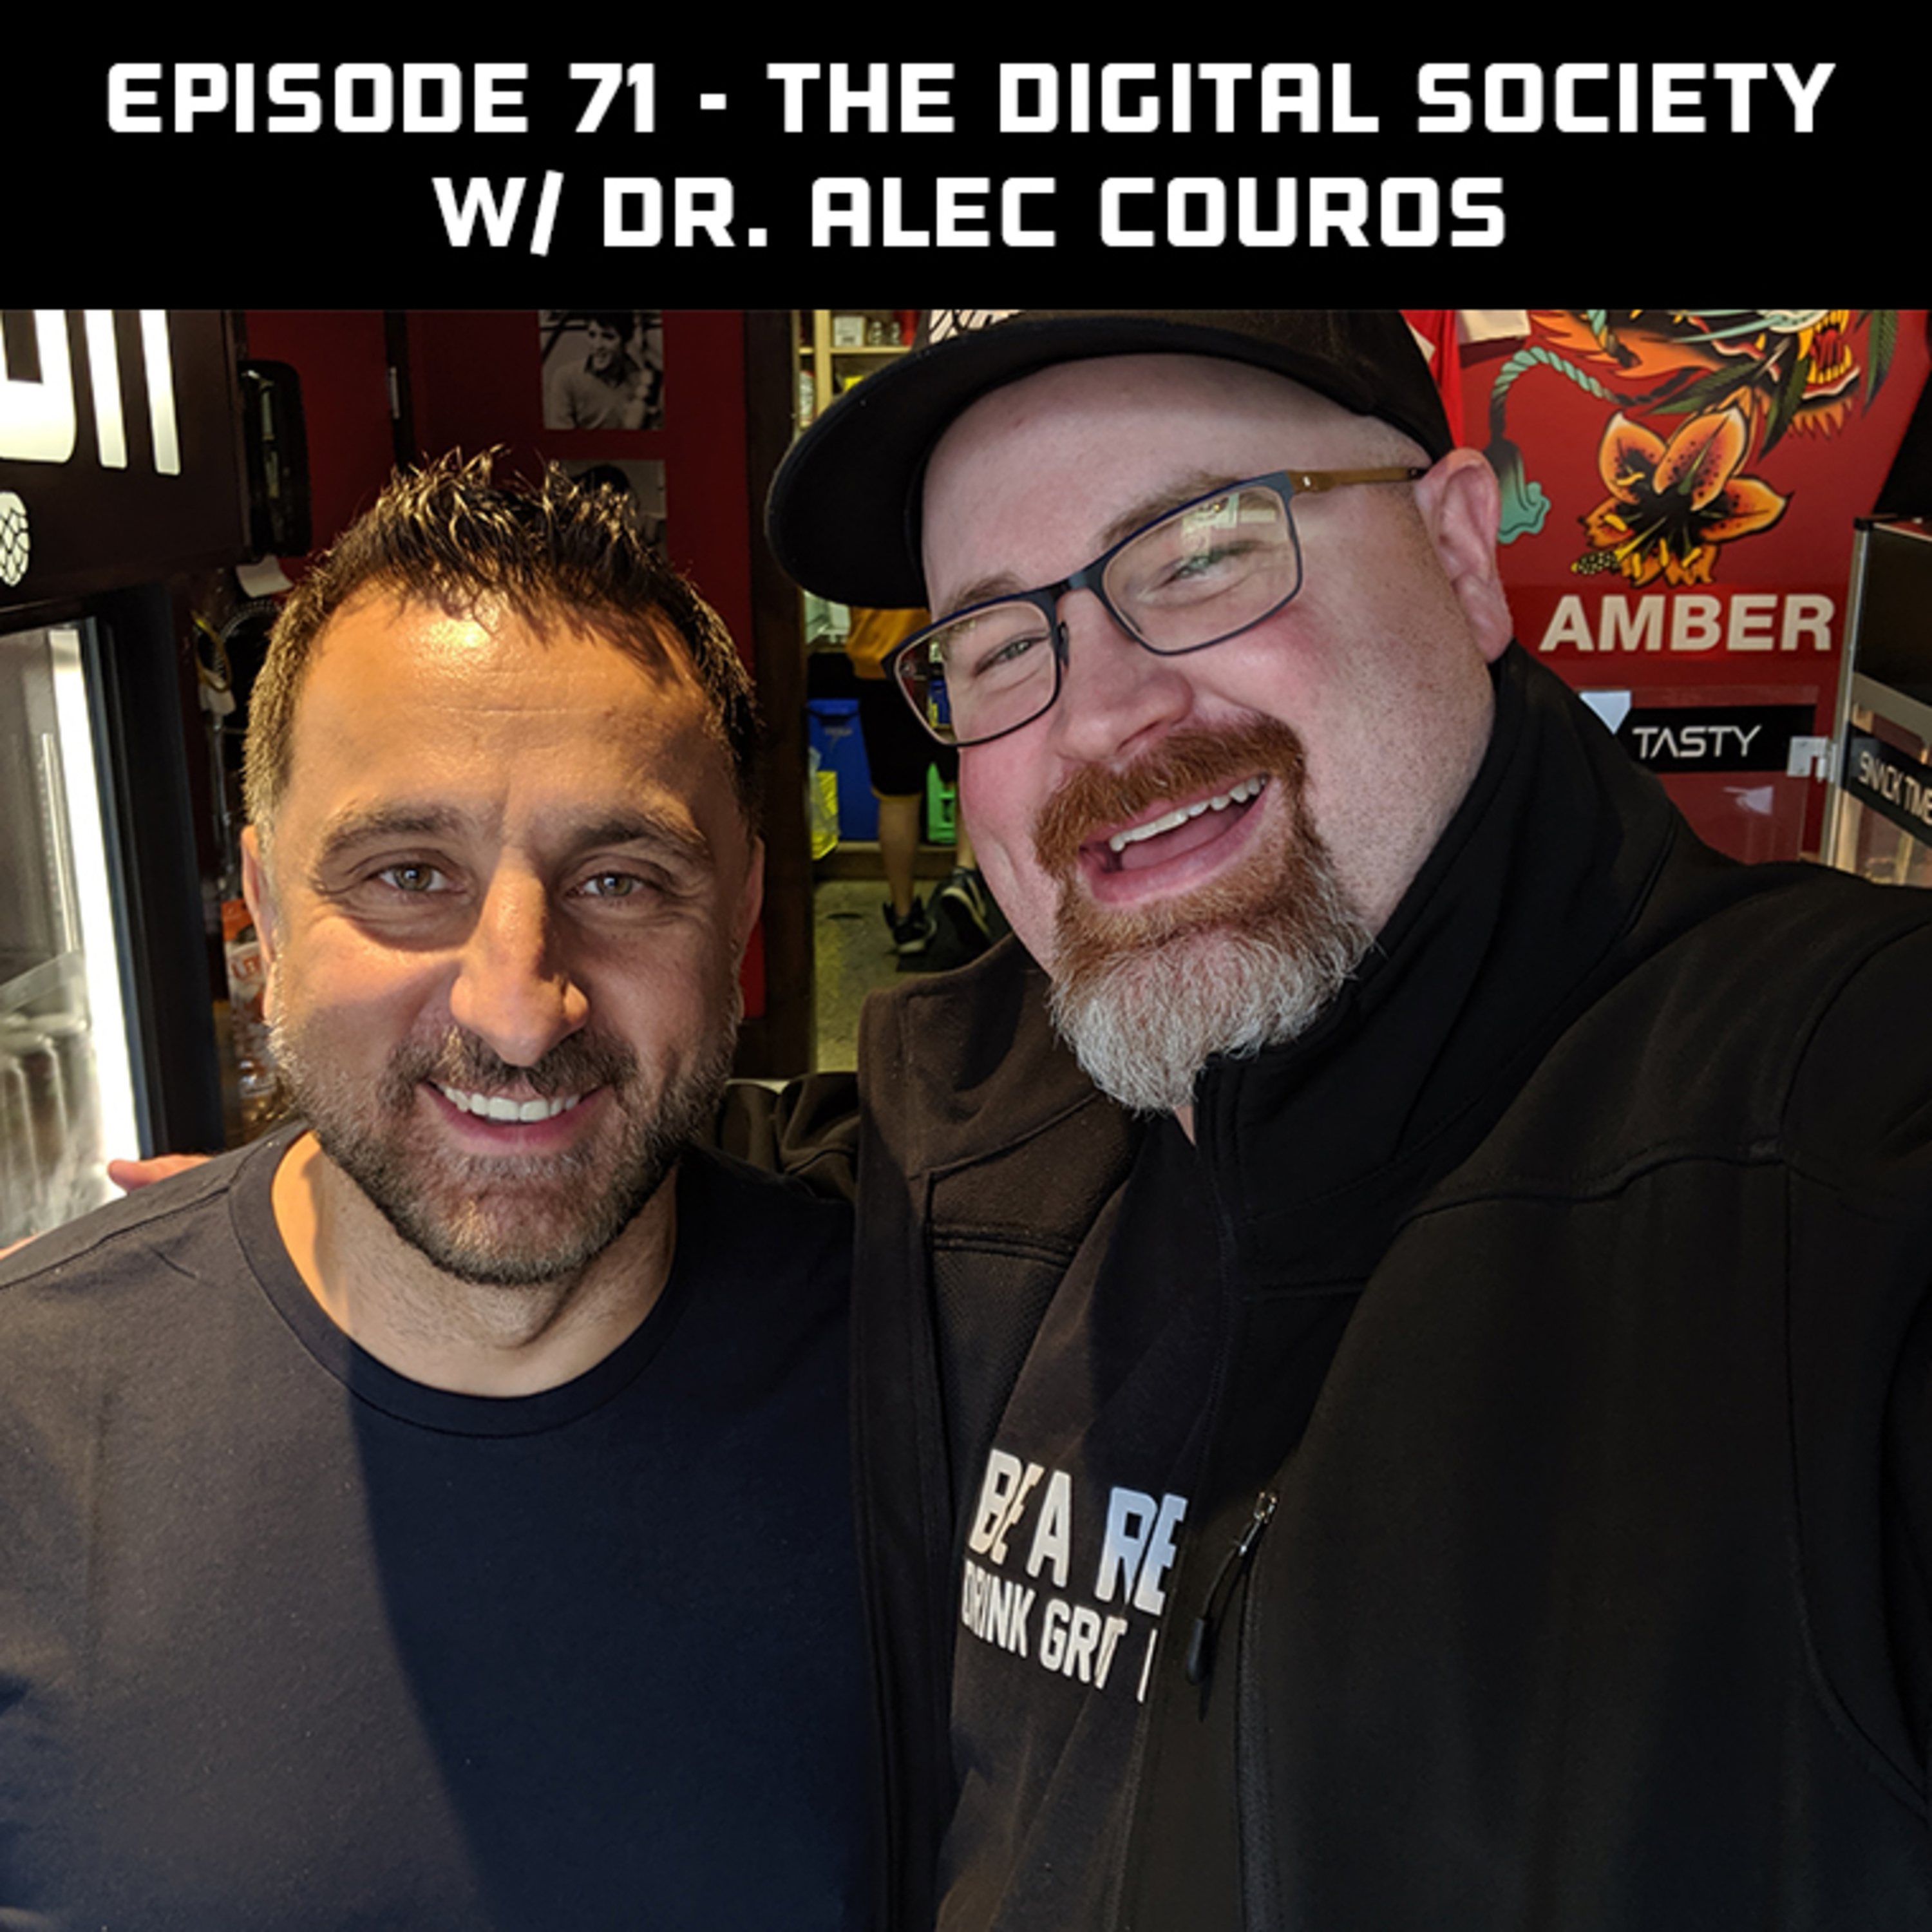 The Digital Society w/ Dr. Alec Couros